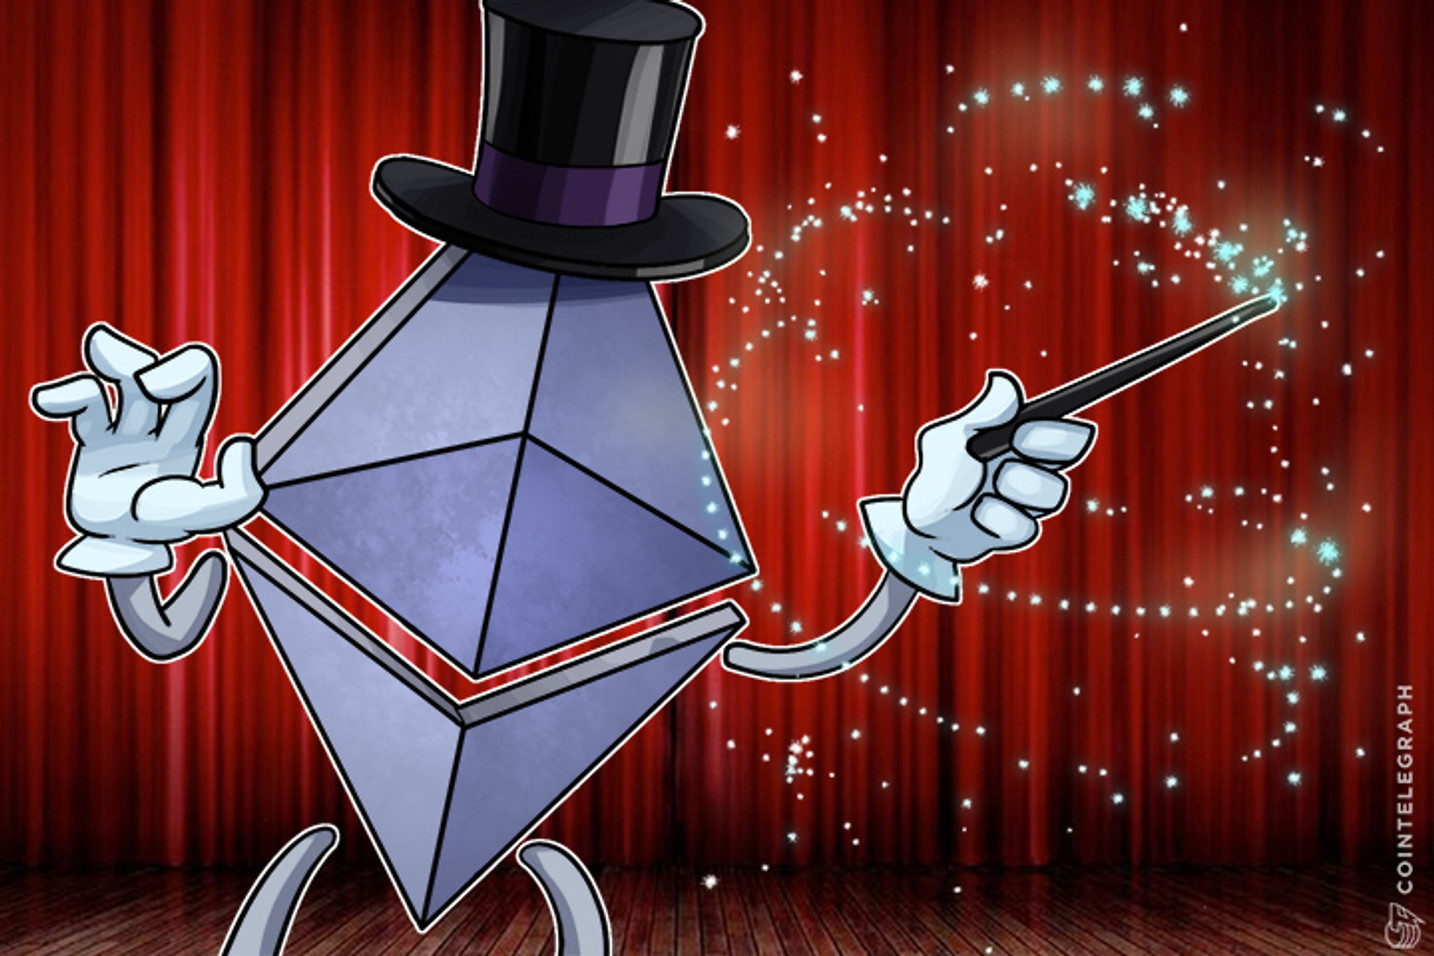 Ethereum May Spring Surprises in 2017